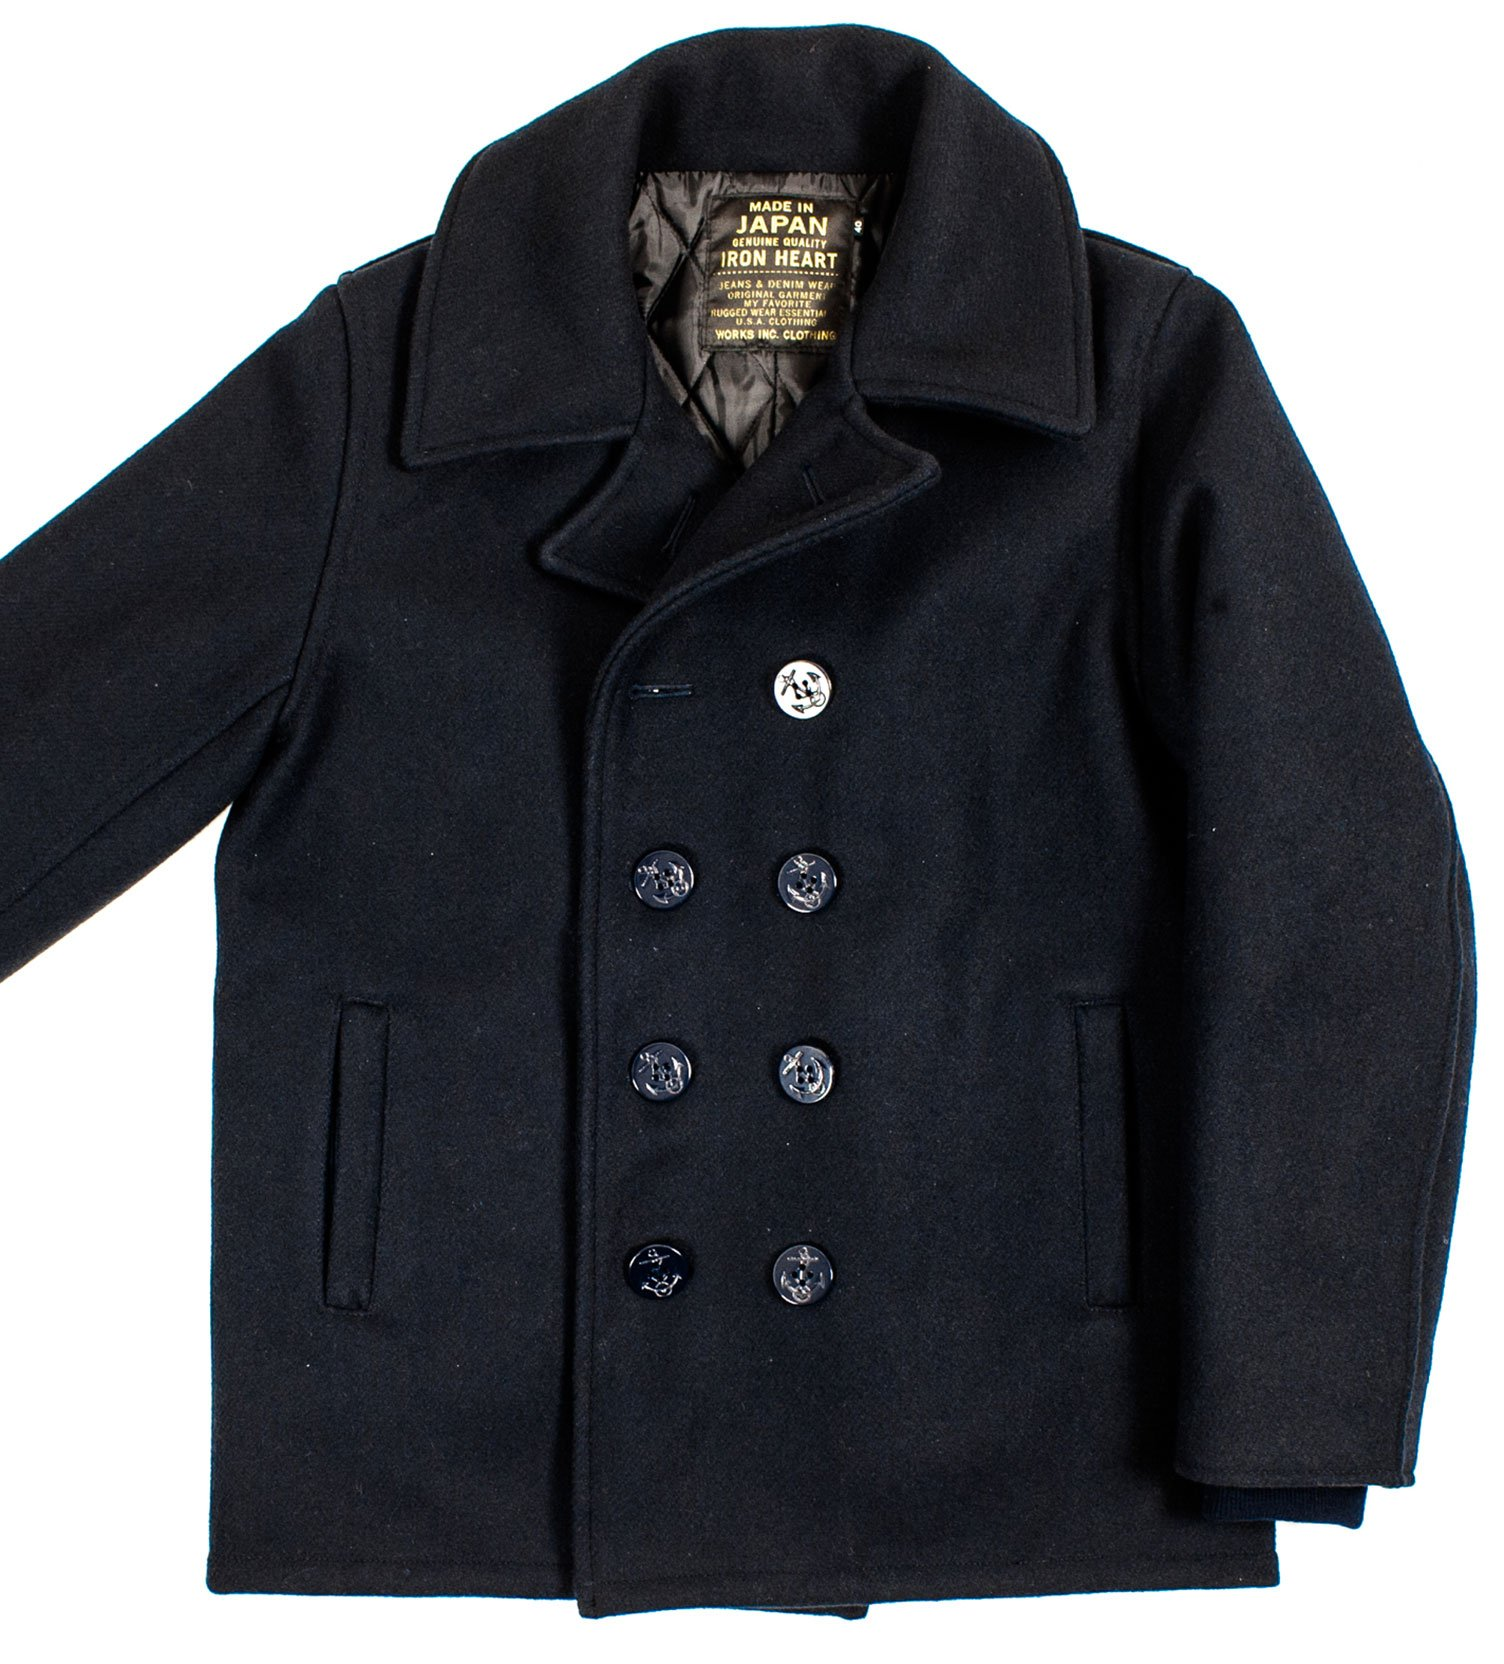 50% price first look 2019 clearance sale Navy Melton Wool Pea Coat